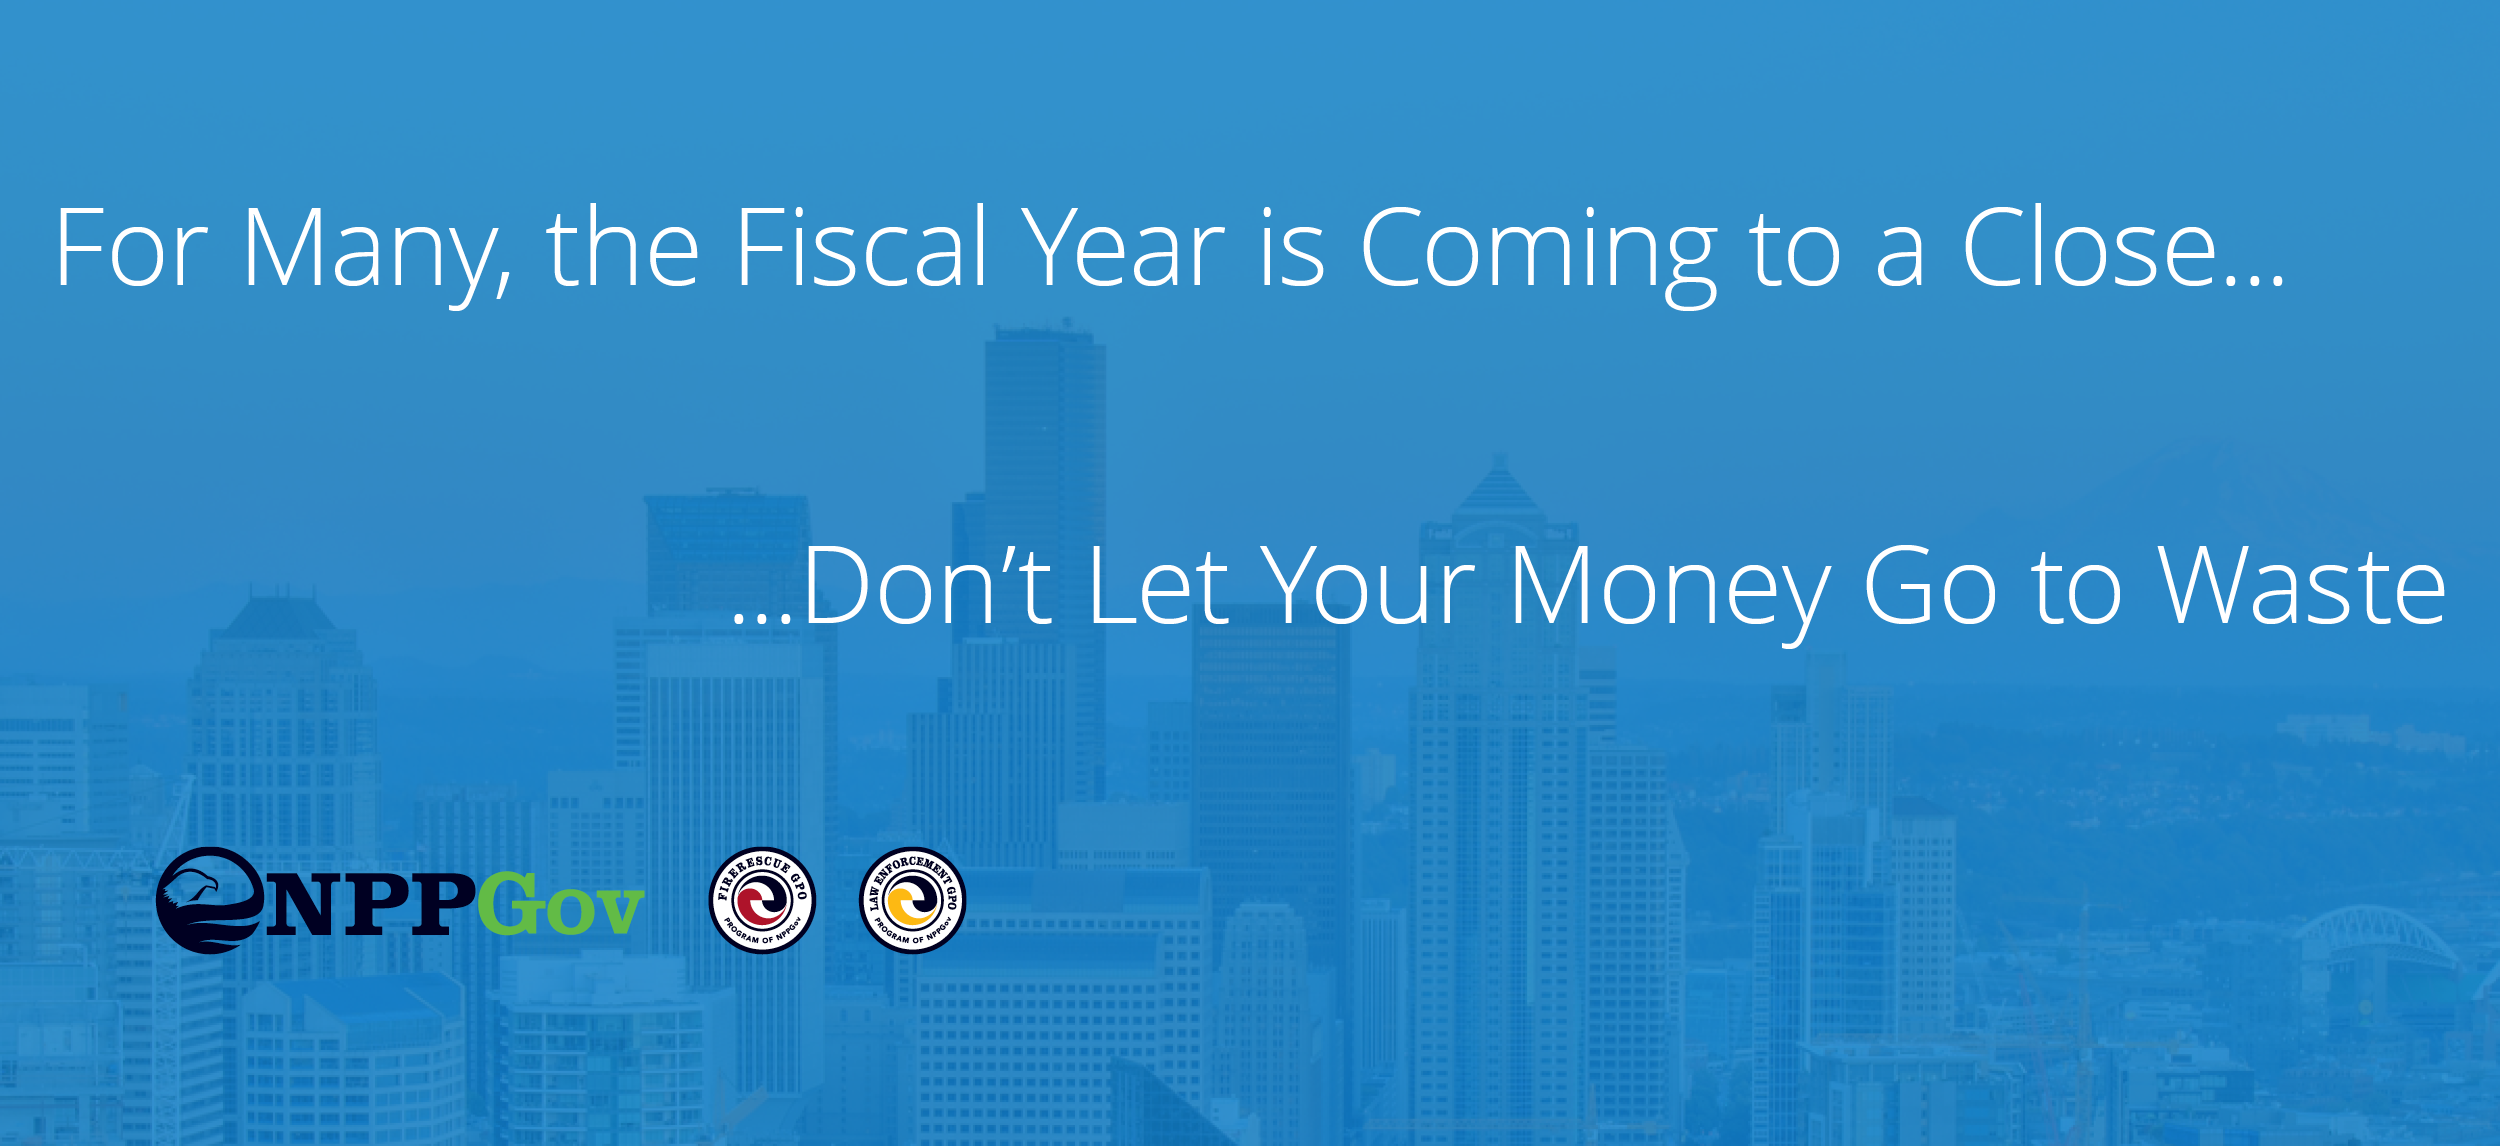 The Fiscal Year is Coming to an End and NPPGov Can Help